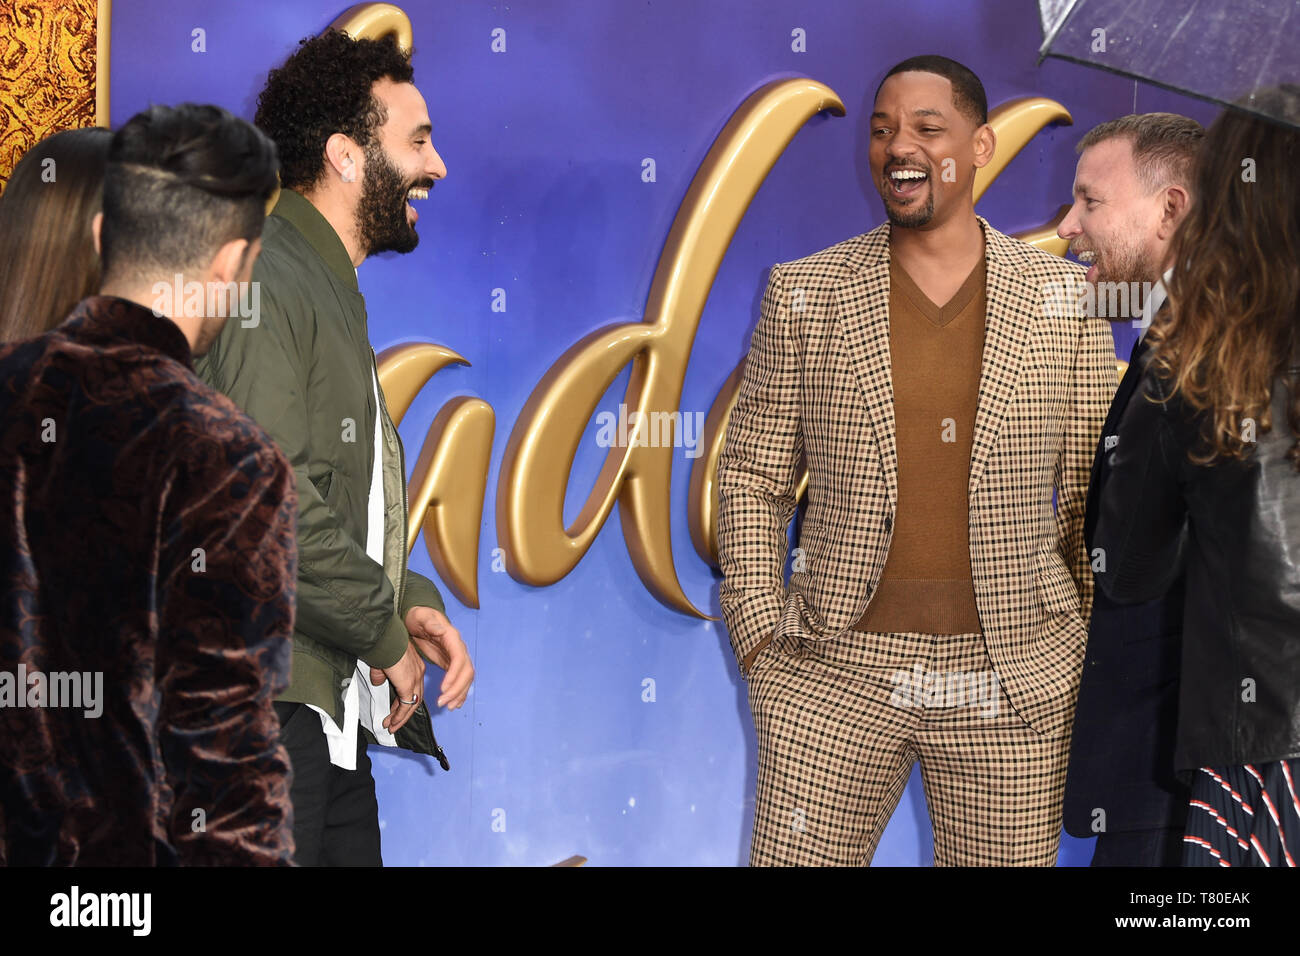 Londra, Regno Unito. 09 Maggio, 2019. Londra, Regno Unito. Maggio 09, 2019: Marwan Kenzari & Will Smith al 'Aladdin' premiere a l'Odeon Luxe, Leicester Square, Londra. Immagine: Steve Vas/Featureflash Credito: Paul Smith/Alamy Live News Foto Stock